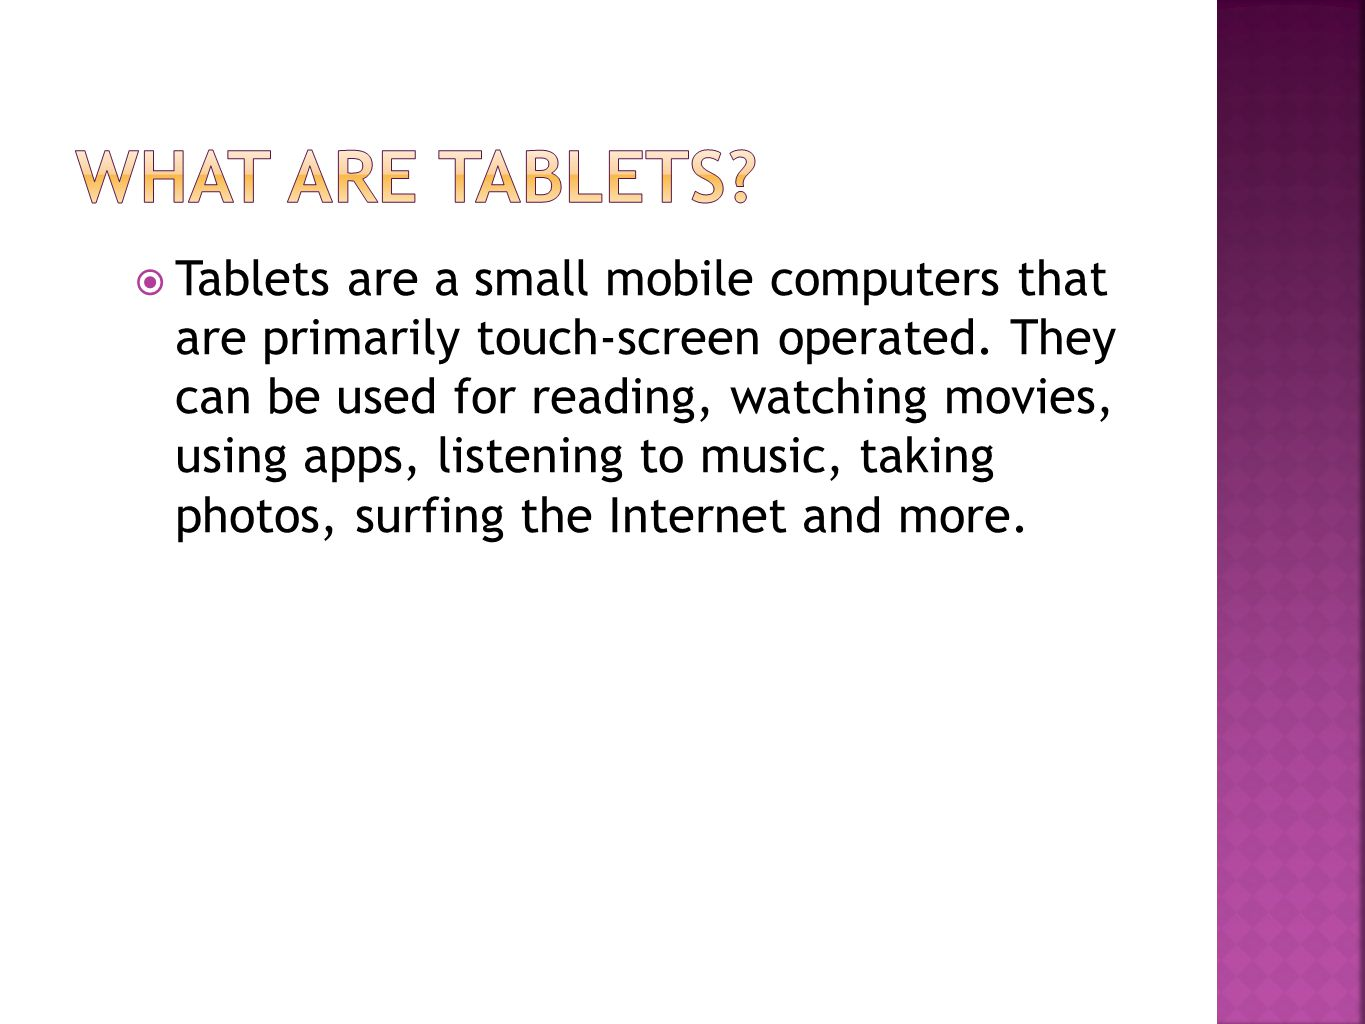  Tablets are a small mobile computers that are primarily touch-screen operated.